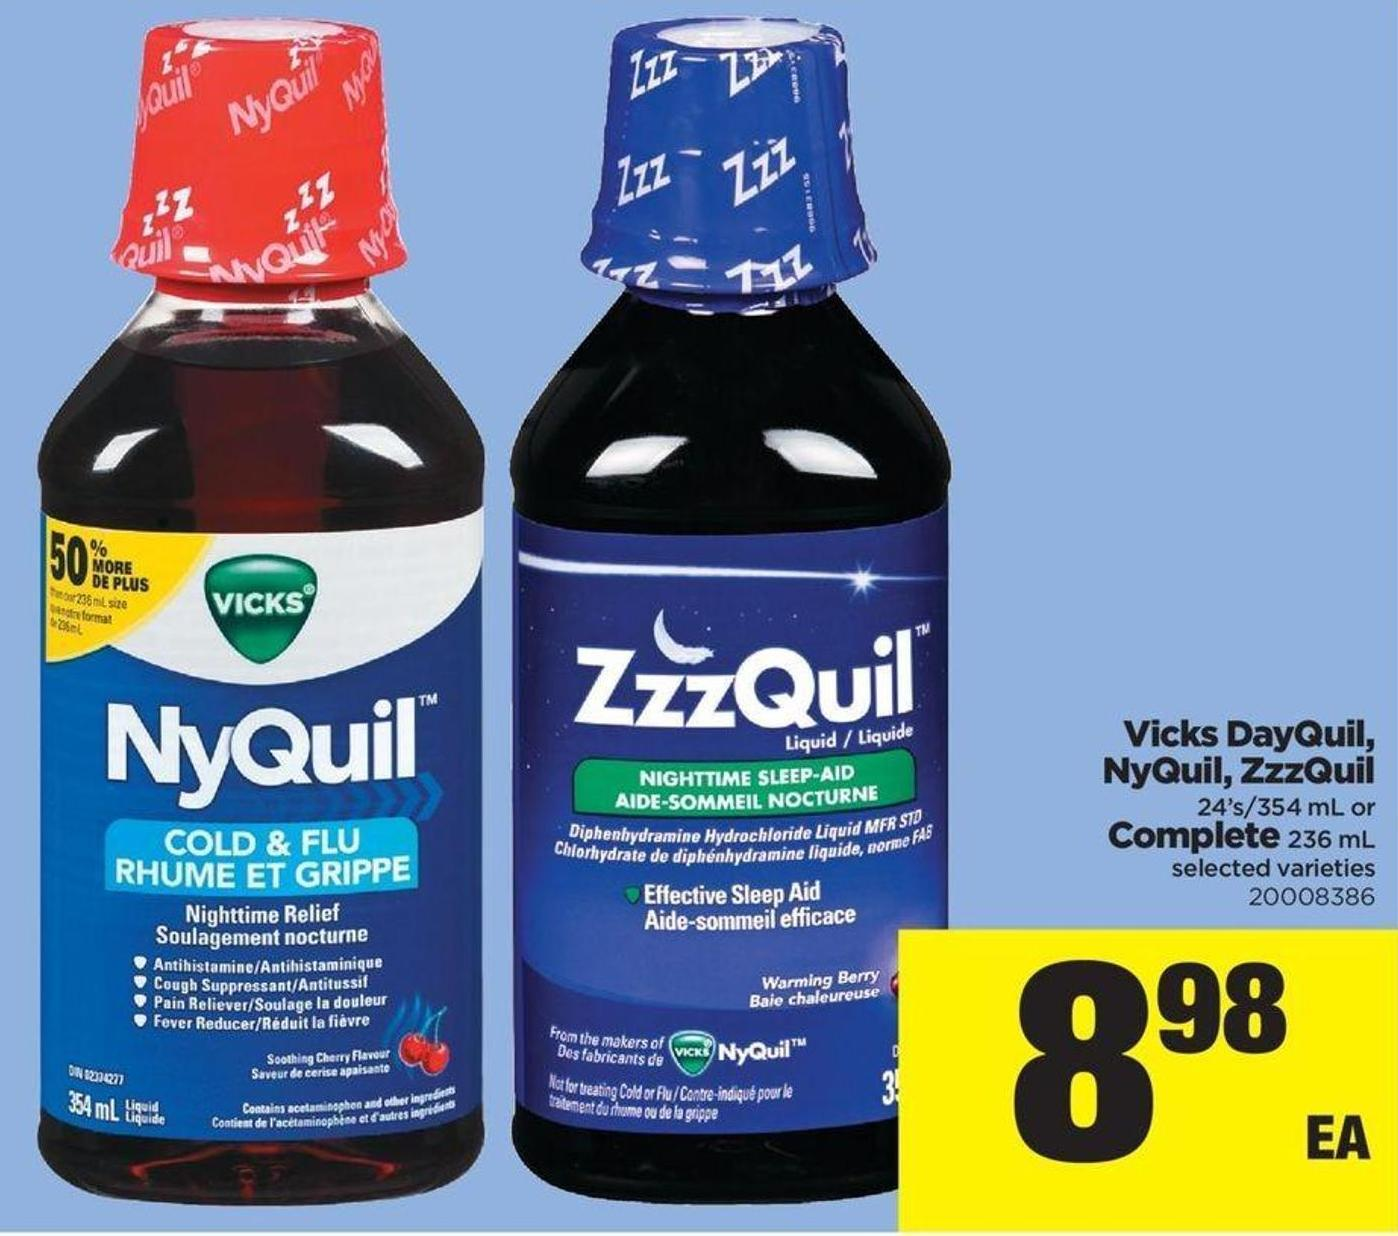 Vicks Dayquil - Nyquil - Zzzquil 24's/354 Ml Or Complete 236 Ml